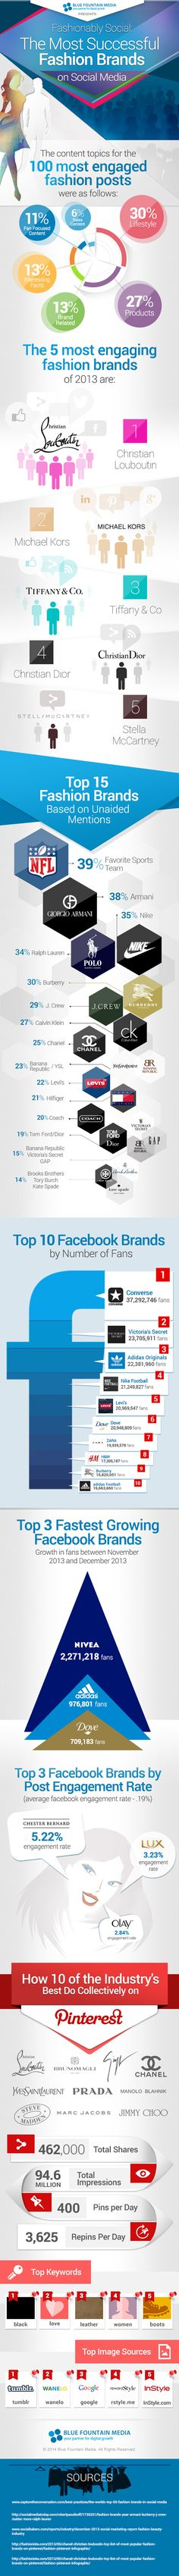 The Most Successful Fashion Brands on Social Media #Fashion #Brands #SocialMedia